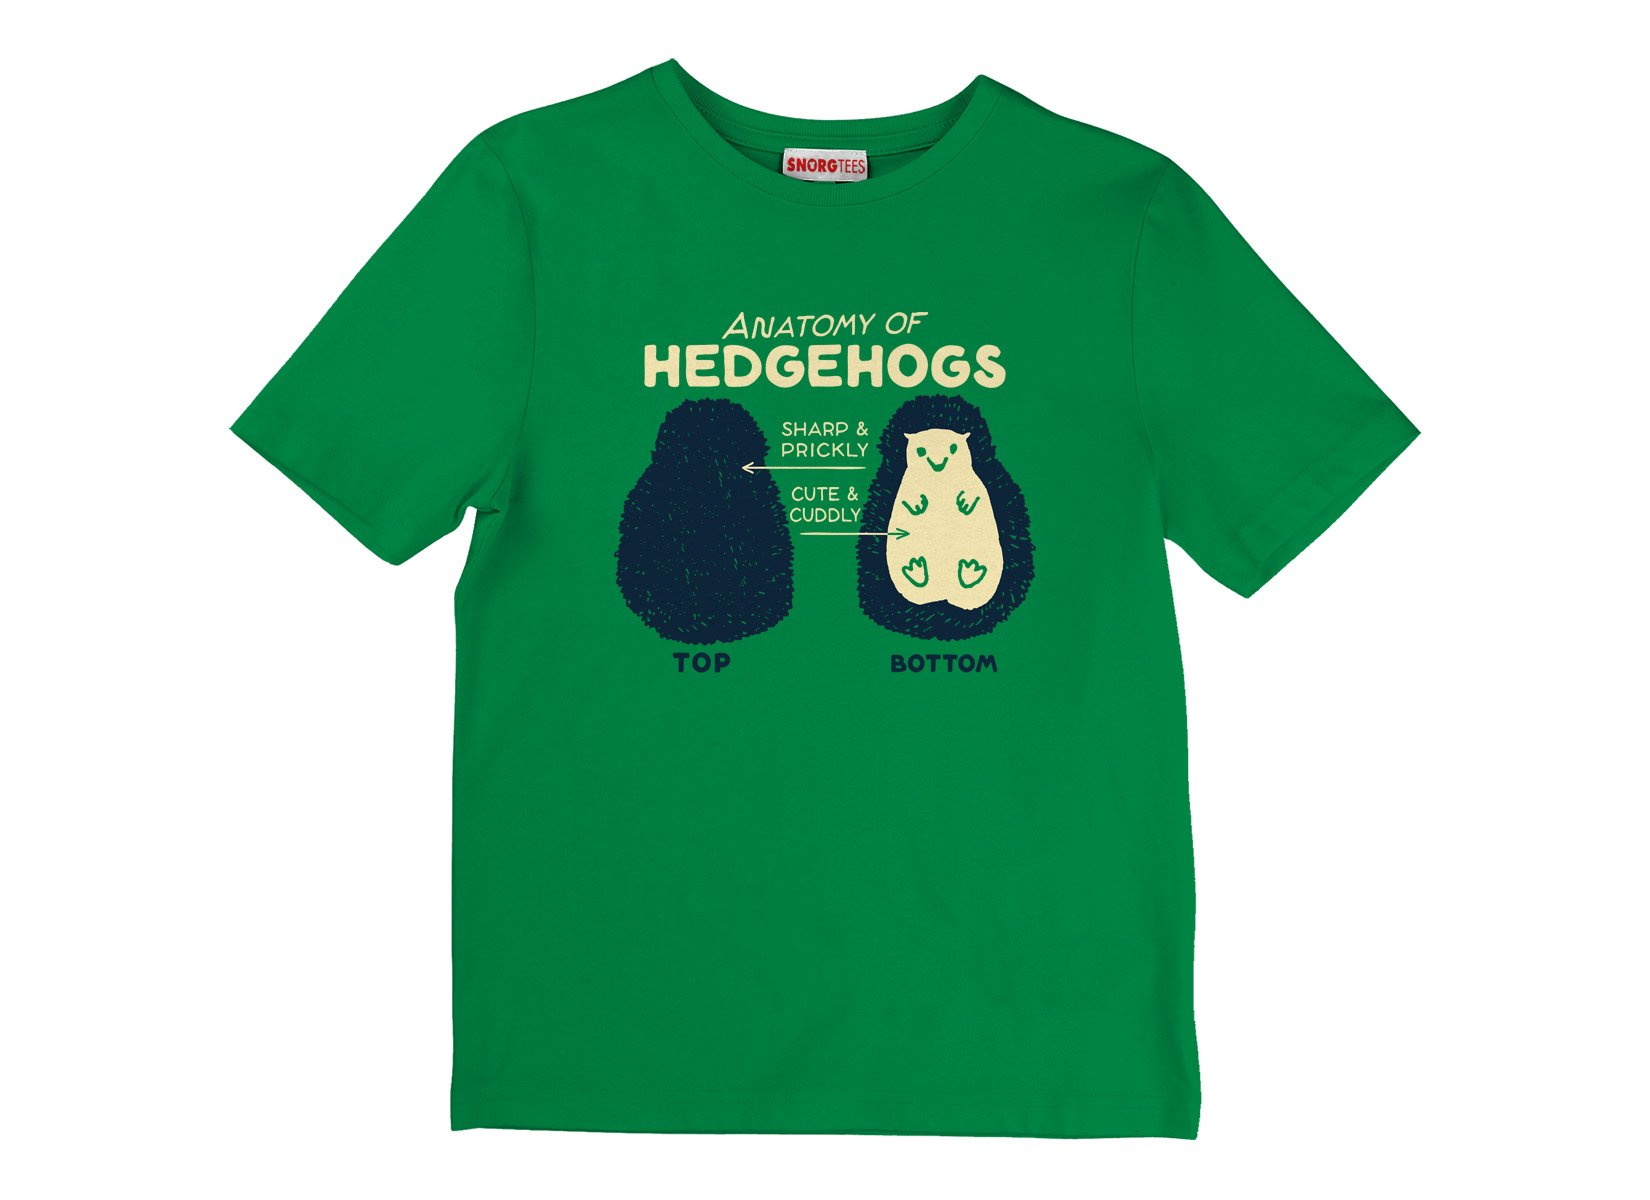 Anatomy Of Hedgehogs on Kids T-Shirt